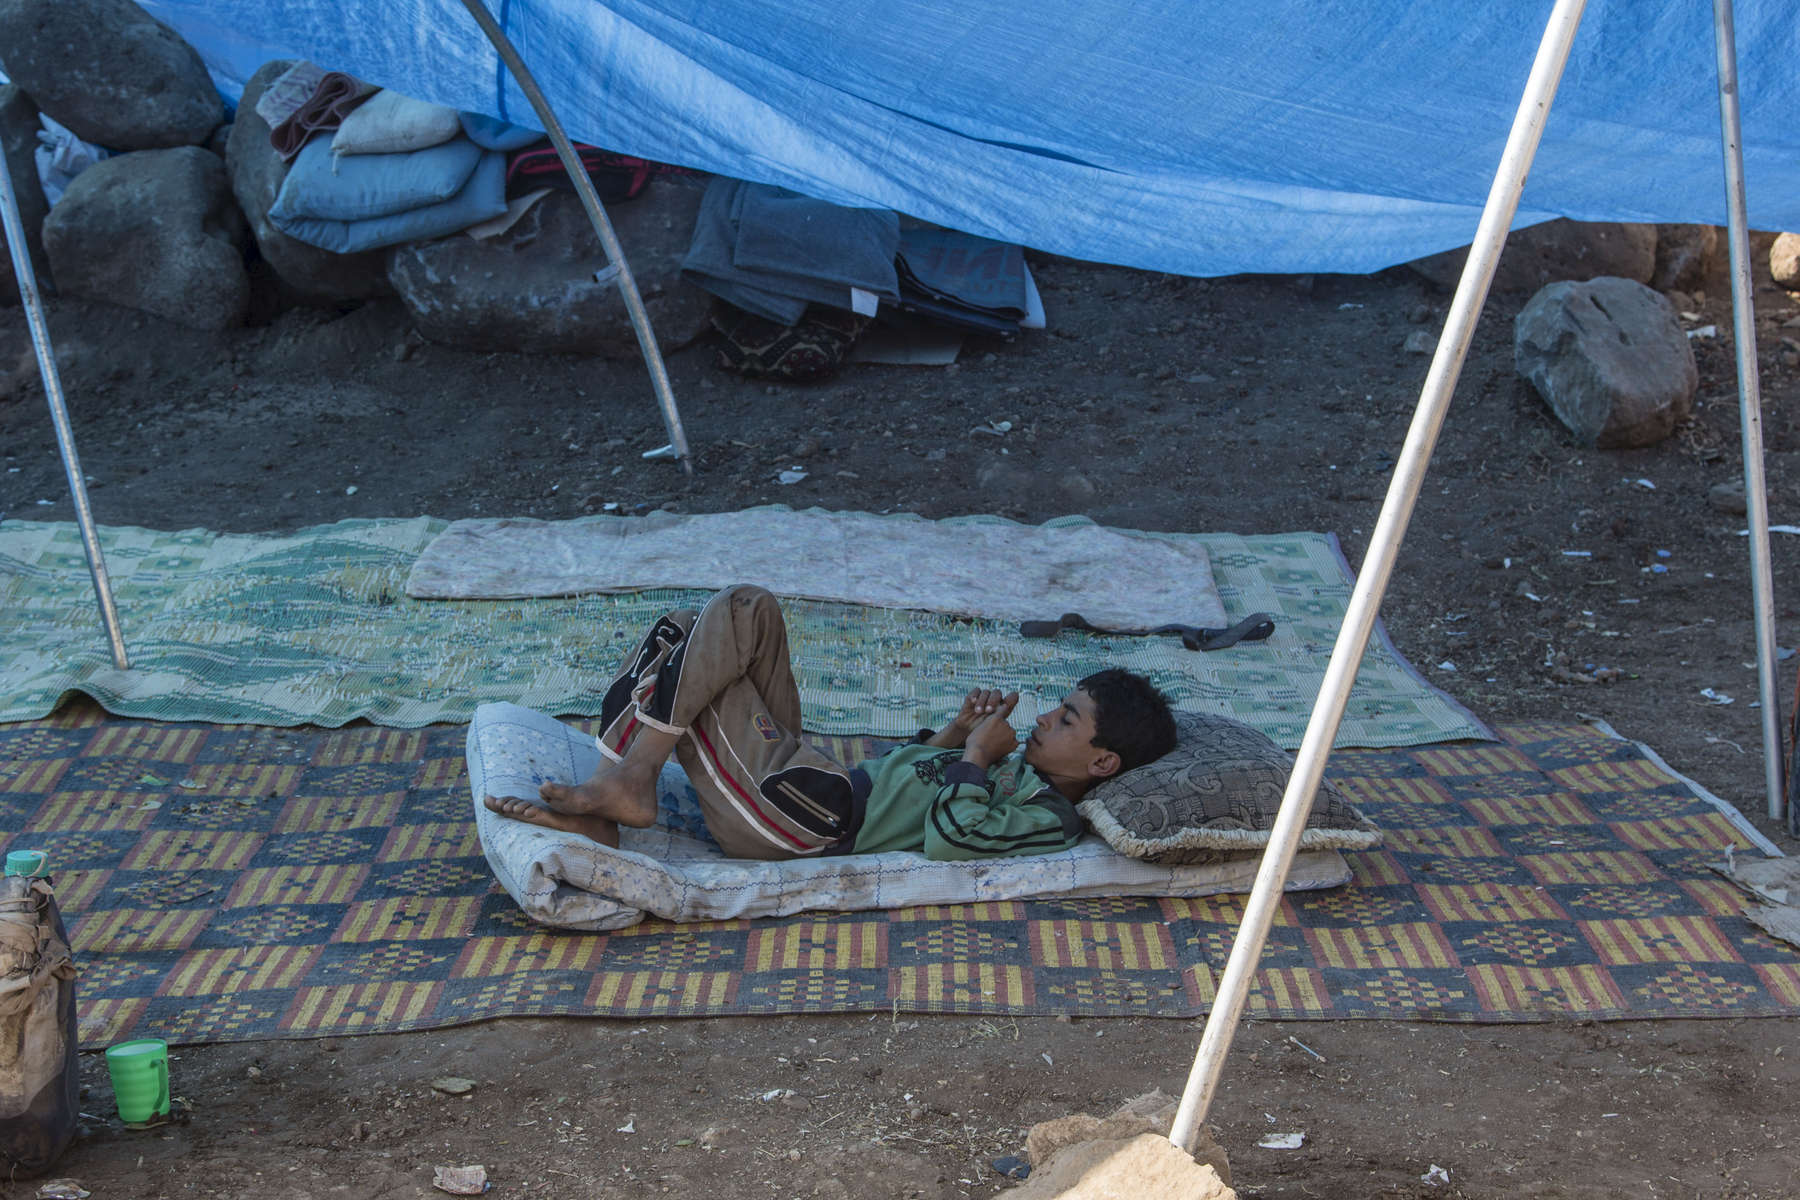 14/08/2014 -- Newroz Camp, Dirk, Syria -- A young Yazidi boy rests in the shade of a tent after arriving at Newroz camp.